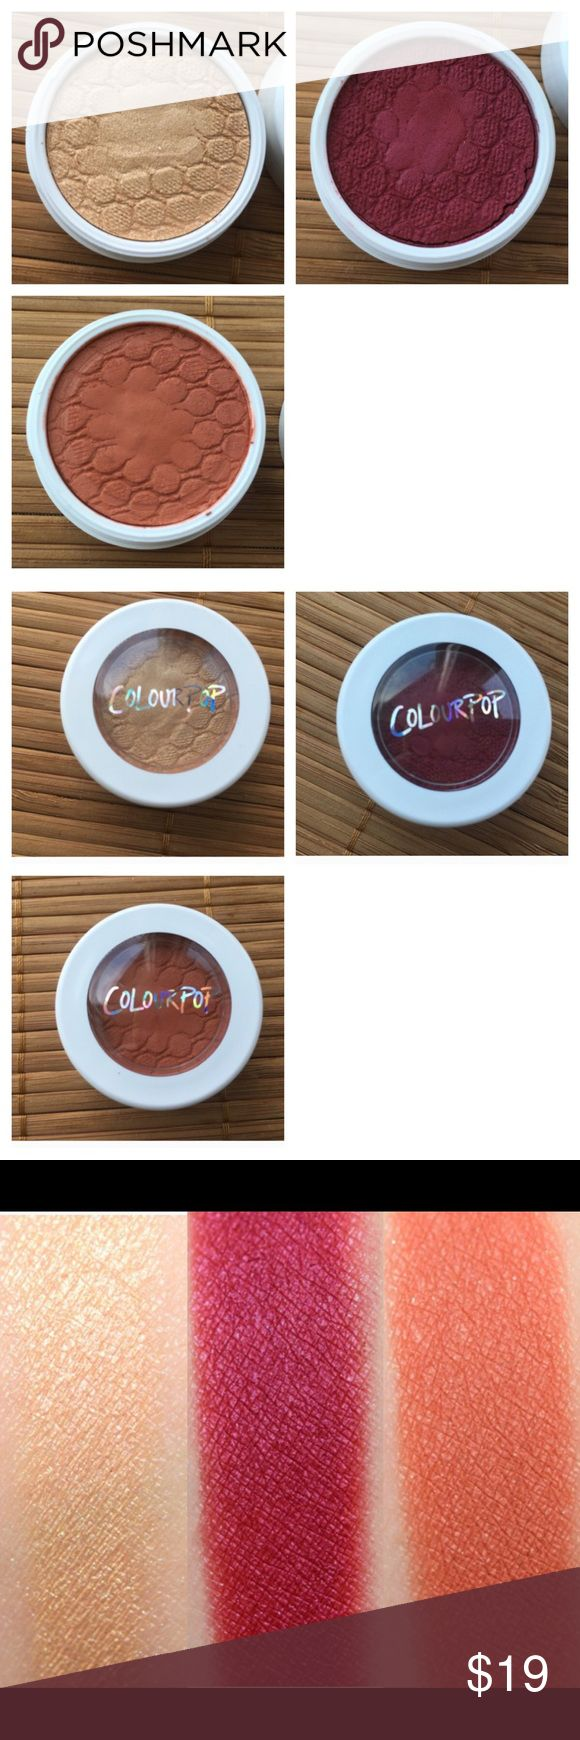 3 Colourpop Eyeshadows Shades are Jinxie, Paradox, and Elixir. Swatched only once. ❗️No trades❗️Bought fresh from the Colourpop store. Just not my shades. There are individual listings for these, but the bundle is cheaper. Colourpop Makeup Eyeshadow